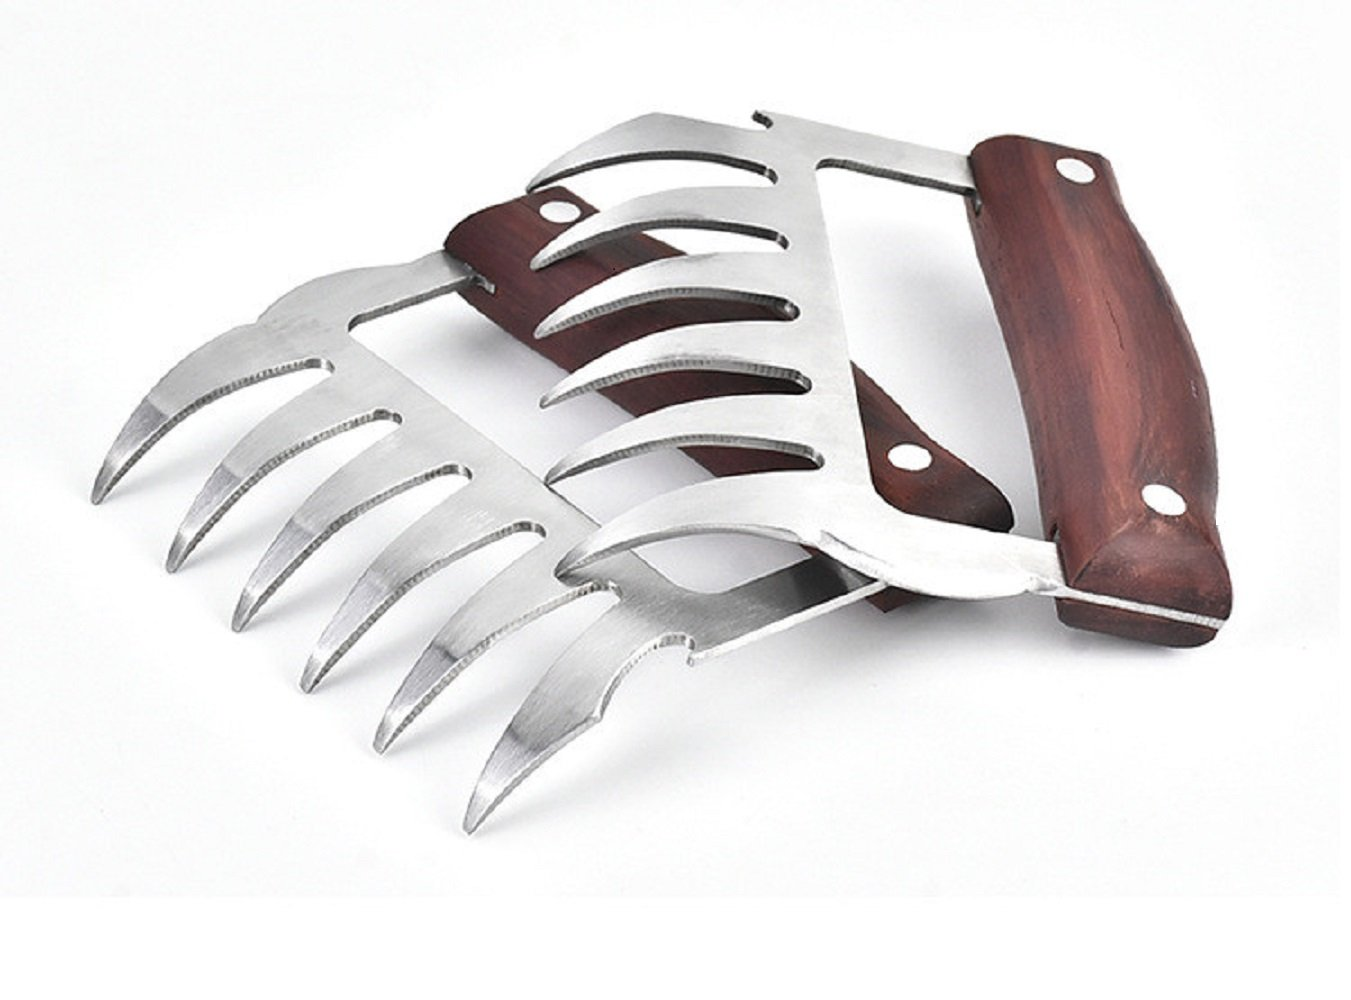 Meat Claws, Plainmarsh Pulled Pork Shredder Claws Stainless Steel Bear Paw Meat Claws BBQ Meat Handler Forks for Shredding Handling & Carving Food BPA Free (Wooden Handle)